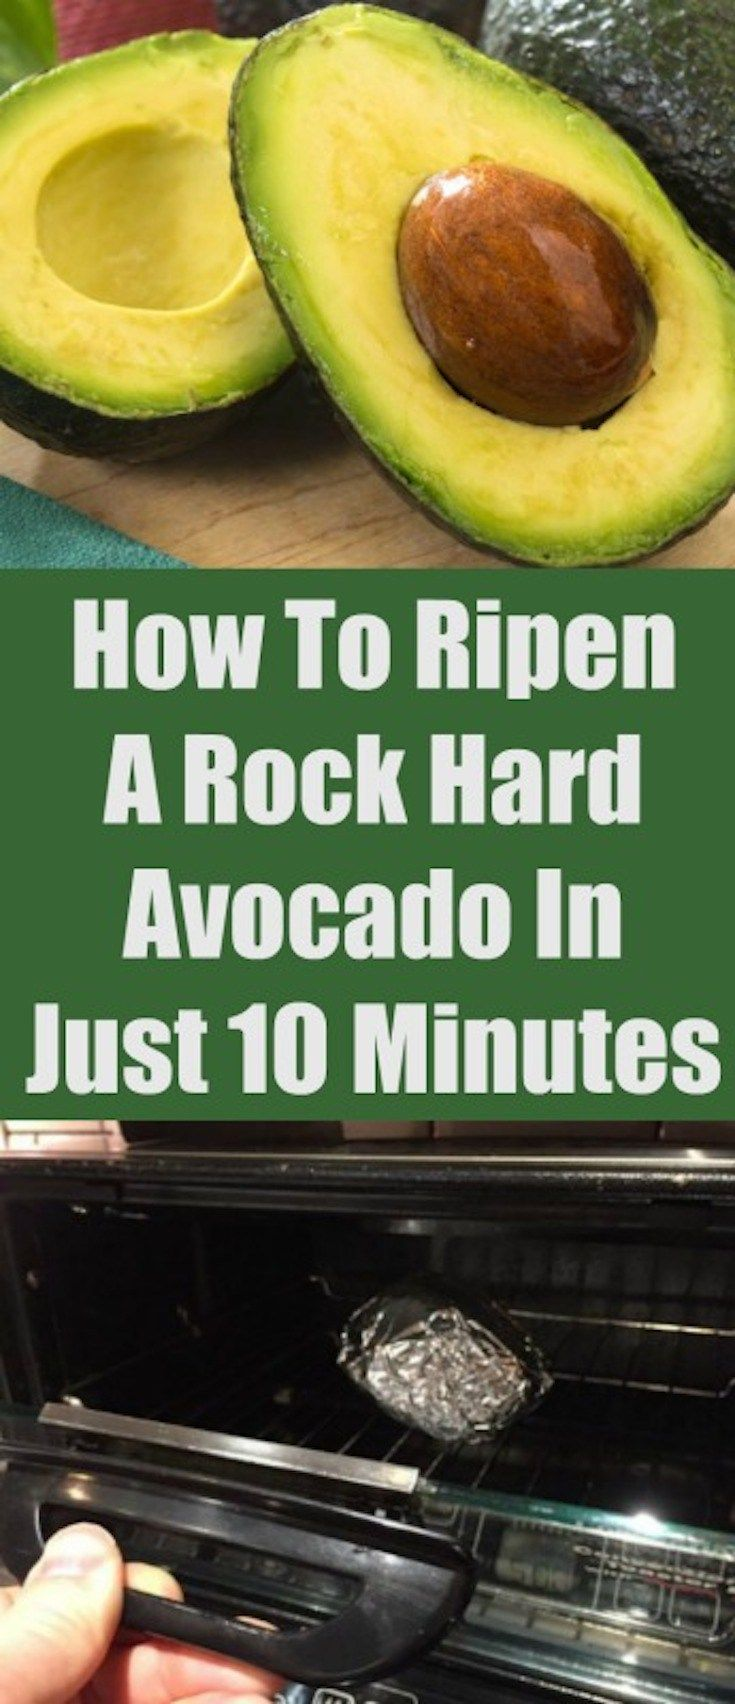 How To Ripen A Rock Hard Avocado In Just 10 Minutes